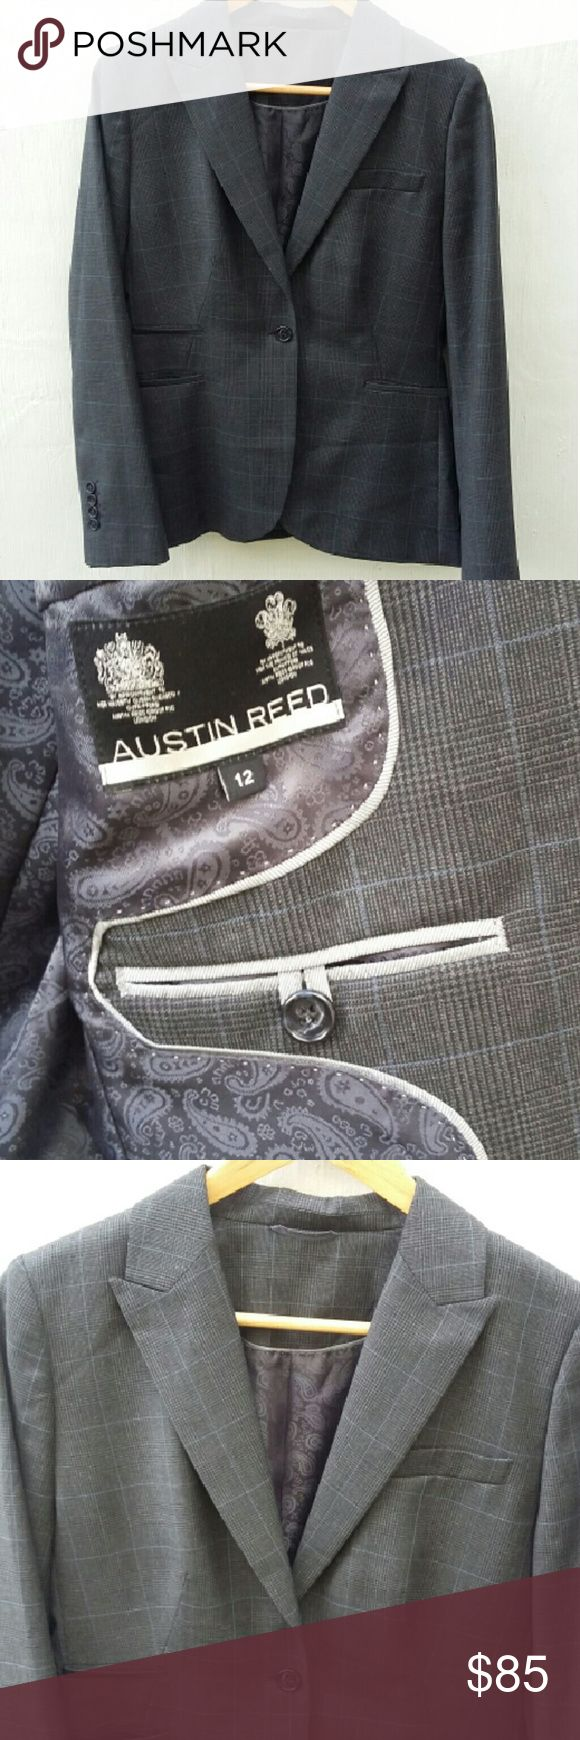 "London's Austin Reed wool blend blazer. Like new. Bond. James Bond. No, you are his superior, the magnificent Dame Judi Dench!  Four front pockets, only one of which has been pierced open. Hidden interior pocket. See pic 2.   50 percent lightweight wool and 50 percent polyester. 100 percent polyester lining. Two side slits in back.   Approx 38"" bust when buttoned. 27"" tall from top of shoulder to hem. Size 12 British or size 10 U.S. Dry clean. It is clean and in very exc condition.  Plz see…"